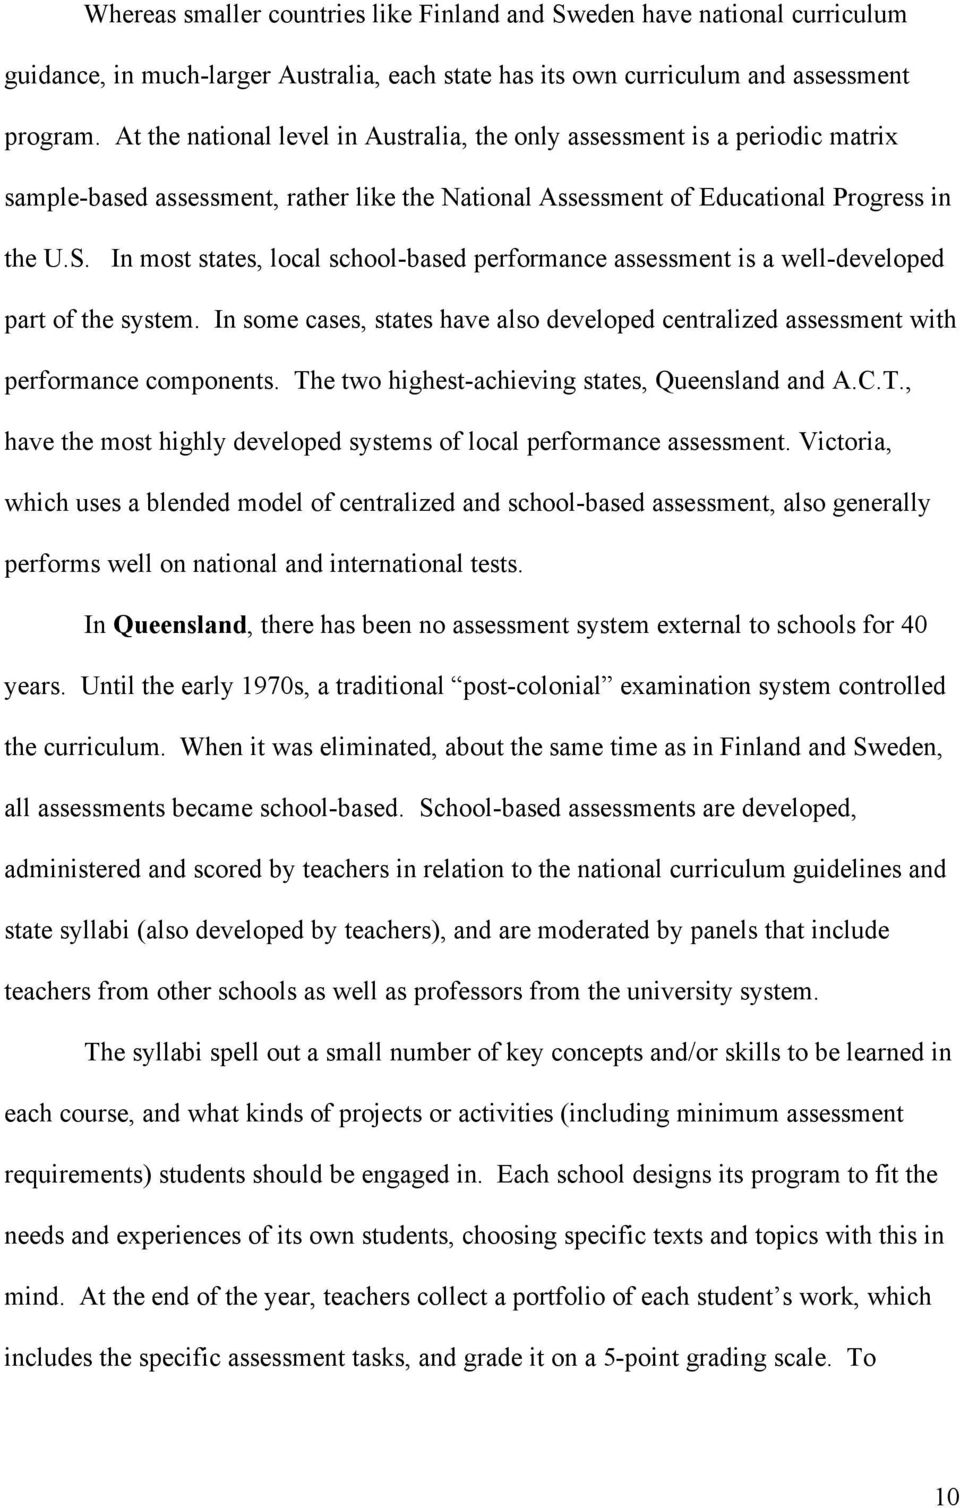 In most states, local school-based performance assessment is a well-developed part of the system. In some cases, states have also developed centralized assessment with performance components.